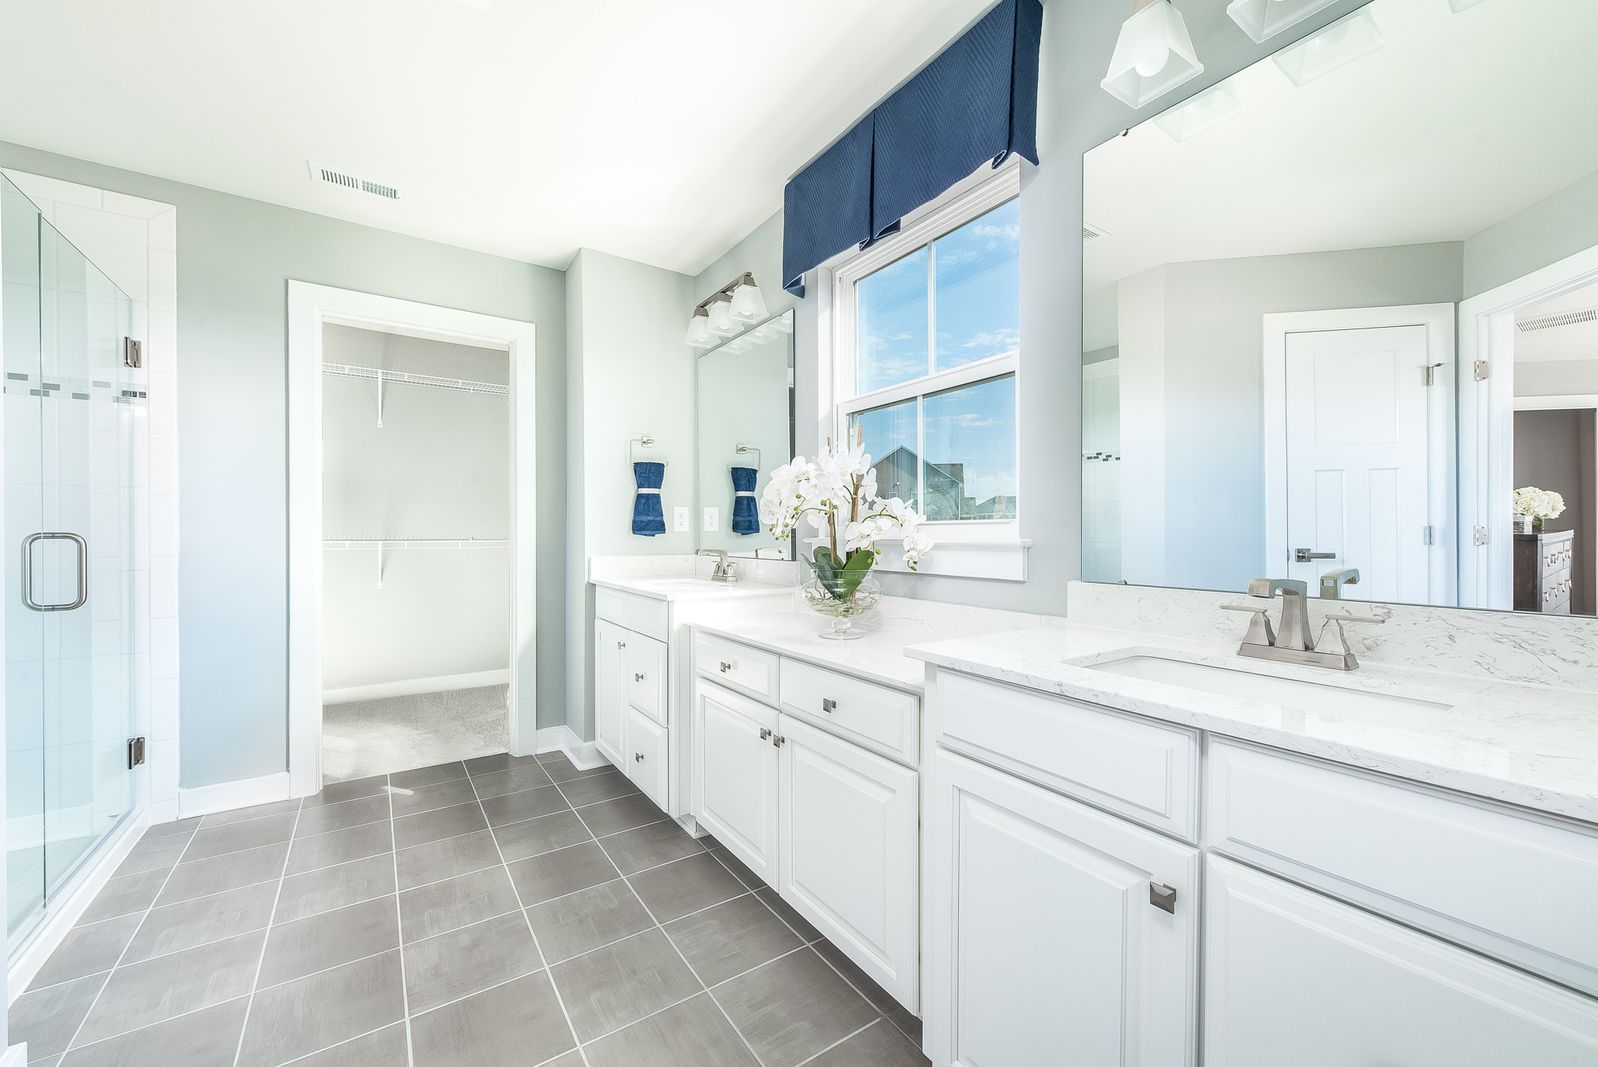 Bathroom featured in the Lehigh w Full Basement By Ryan Homes in Indianapolis, IN